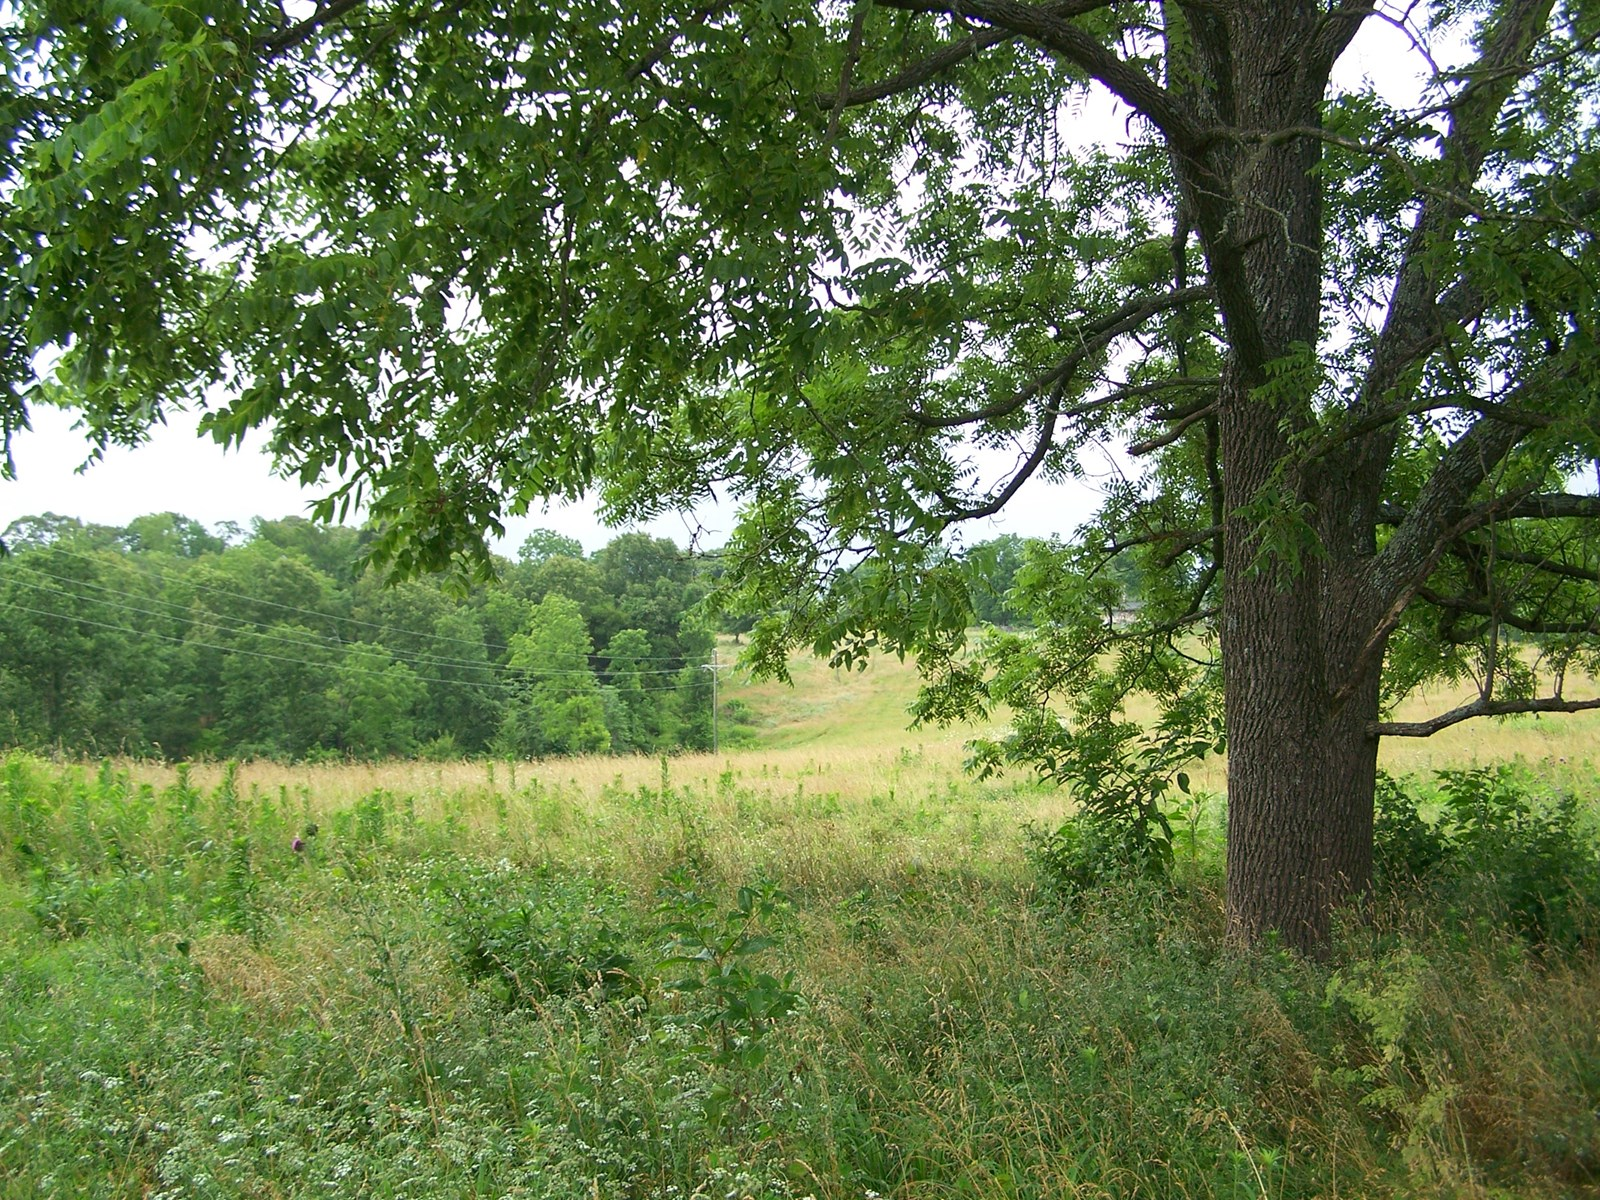 20 Acres Pasture and Timberland For Sale in Arkansas Ozarks